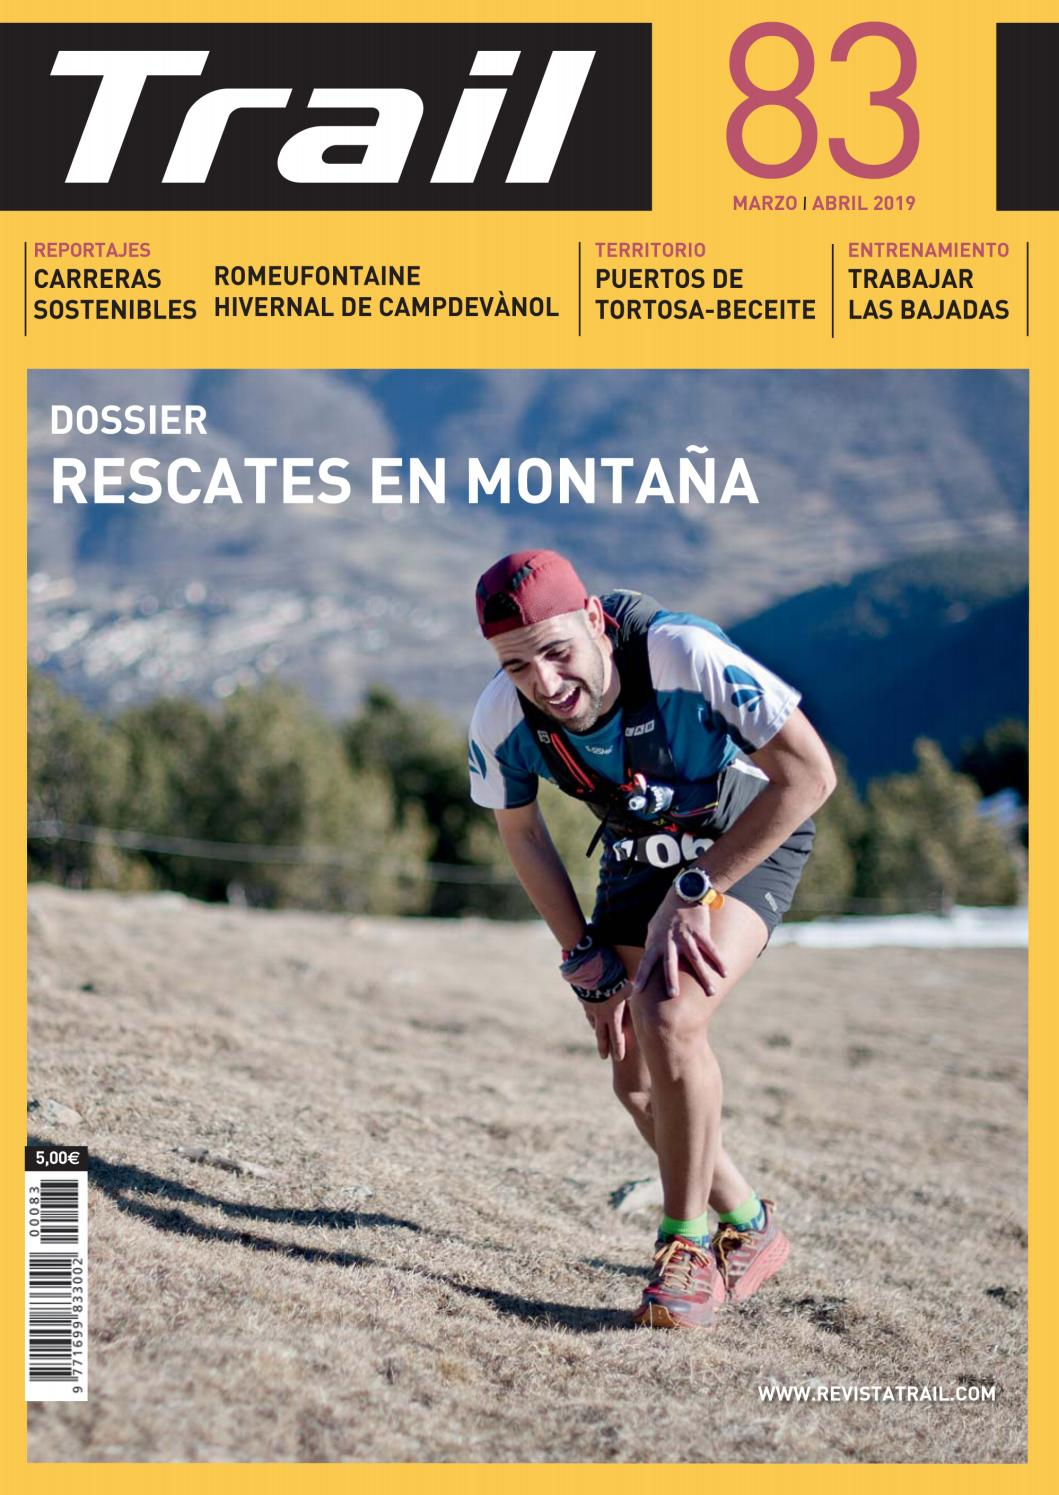 Trail Issuu 83 Revista Trail Revista By 83 By Issuu EHID2W9Y